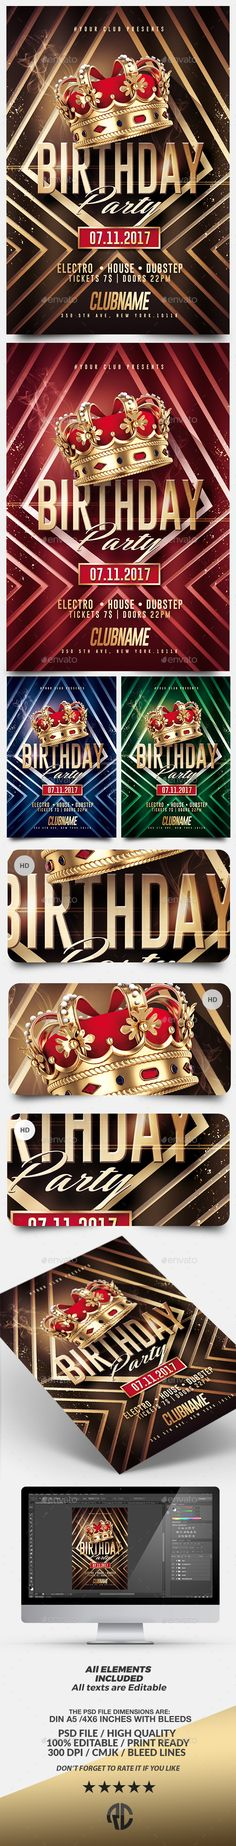 Gold Birthday | Kings Flyer Template PSD. Download here: https://graphicriver.net/item/gold-birthday-kings-flyer-template/17651215?ref=ksioks